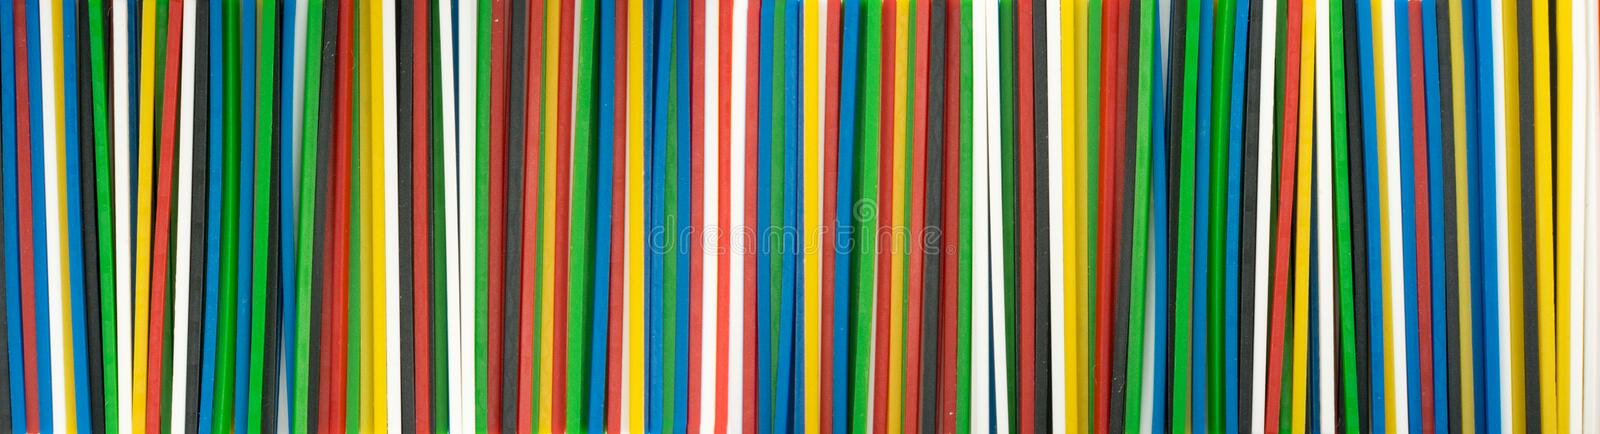 Range of Colorful Plastic Math Sticks for Learning Mathematic stock image